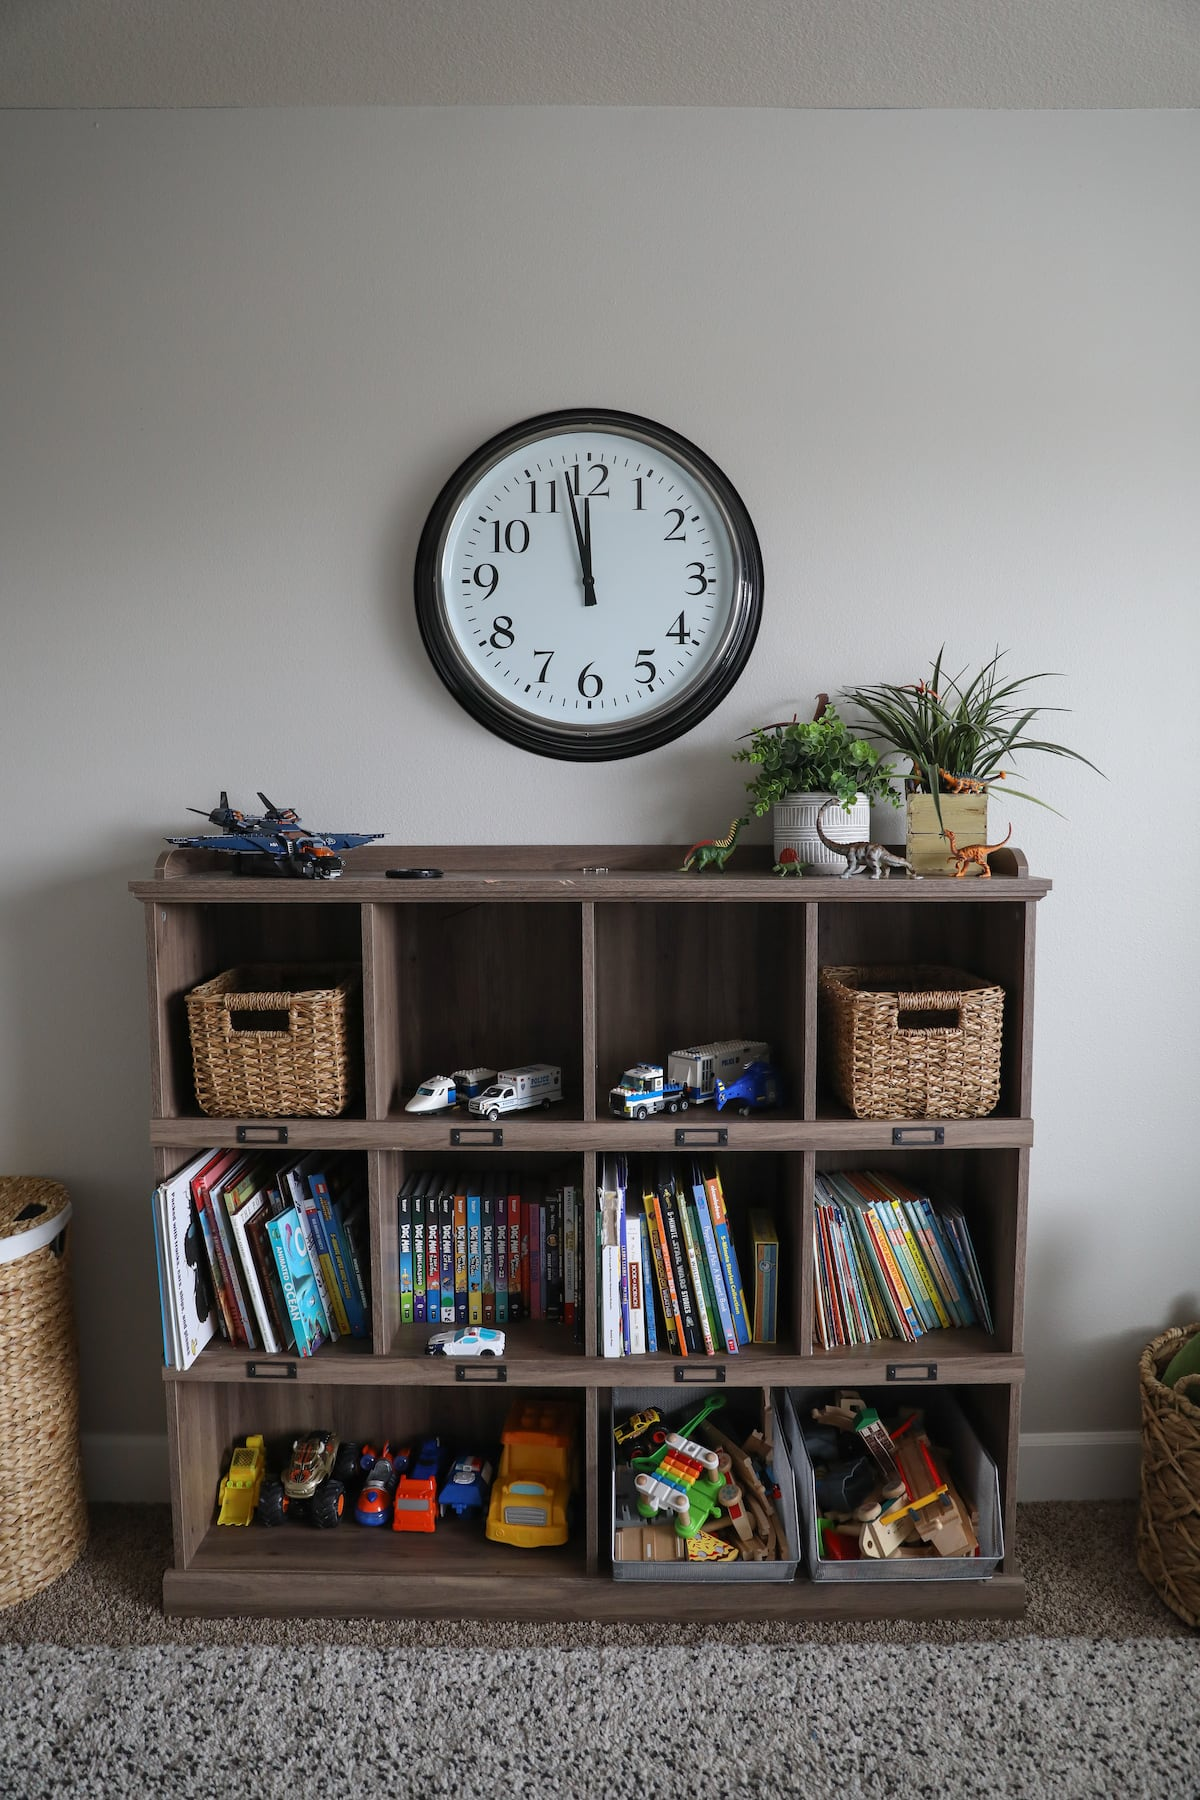 book shelf with books and toys